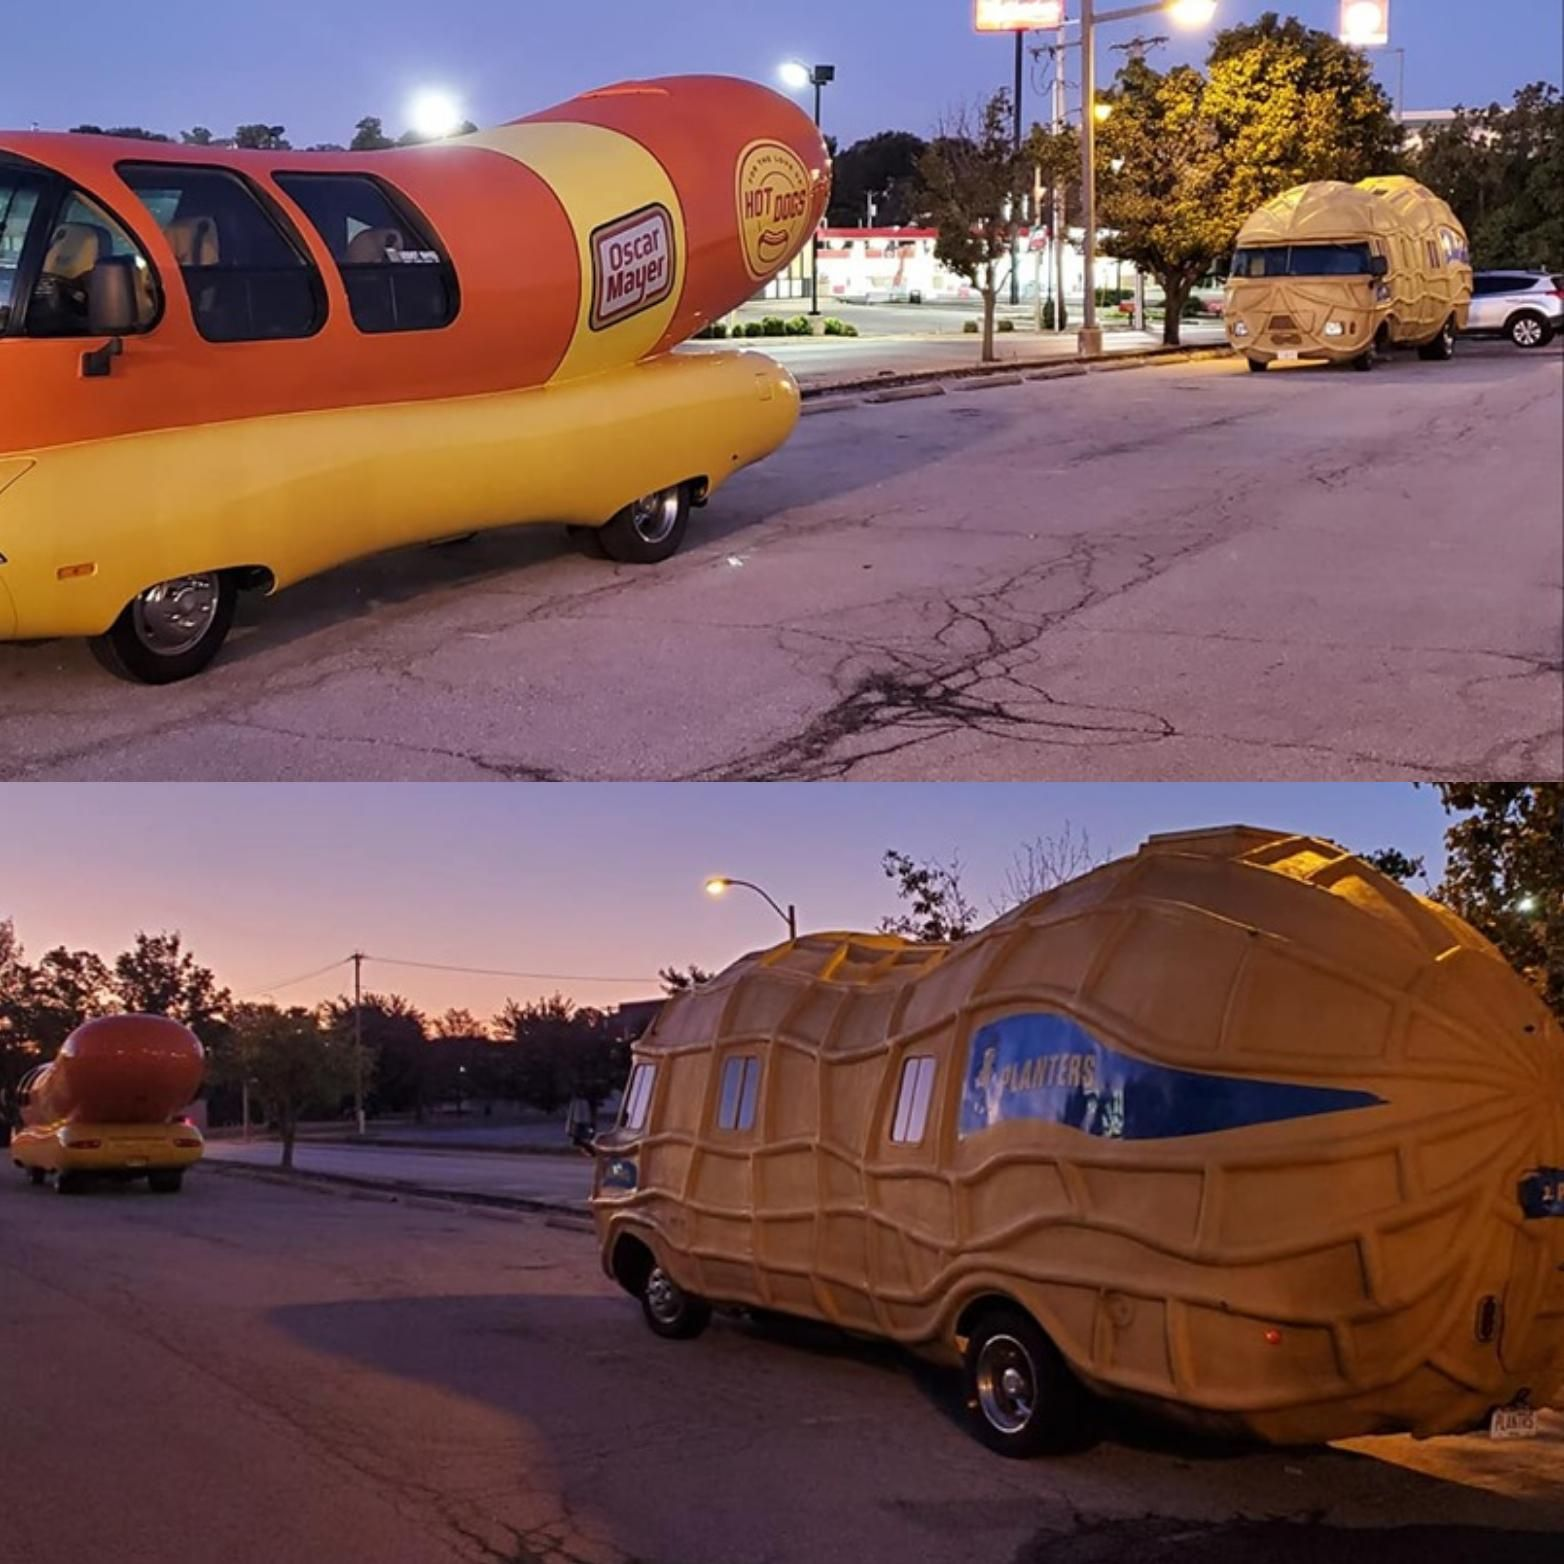 The nut truck behind the Weiner Mobile...